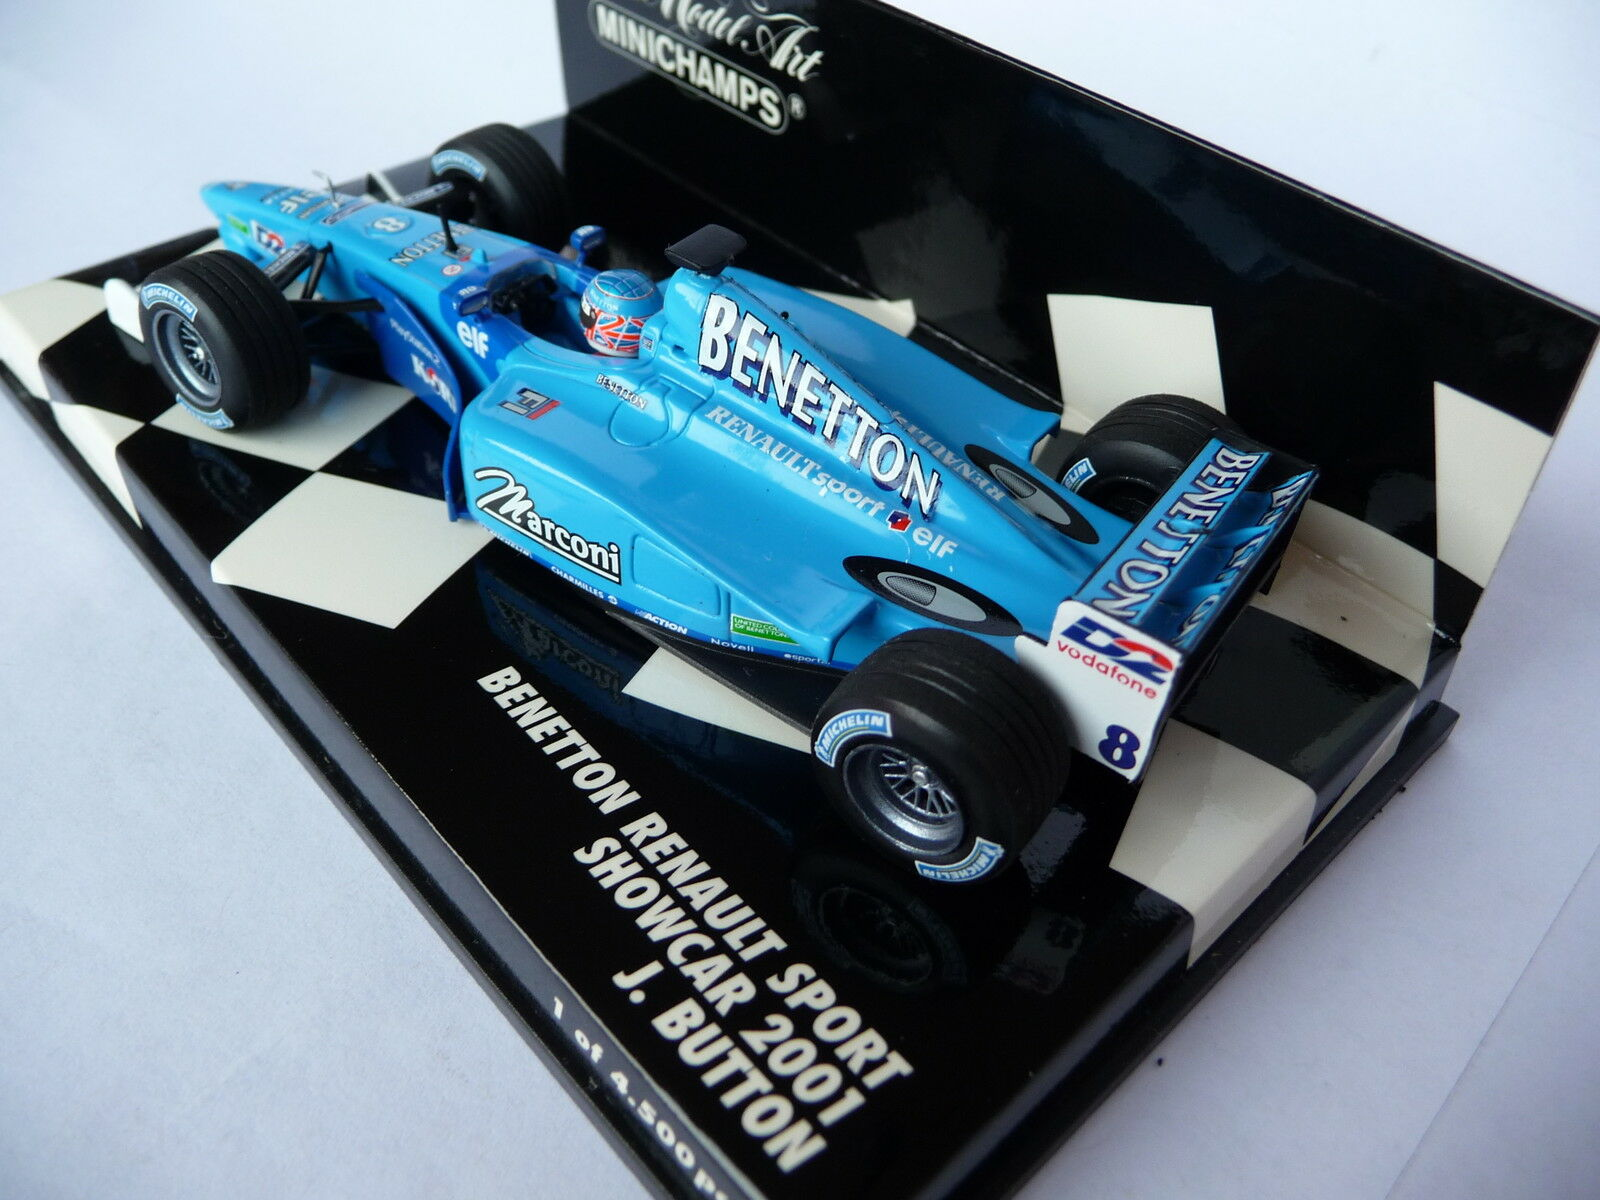 Minichamps 1 43 Benetton Renault Sport Showcar 2001 Button 010098